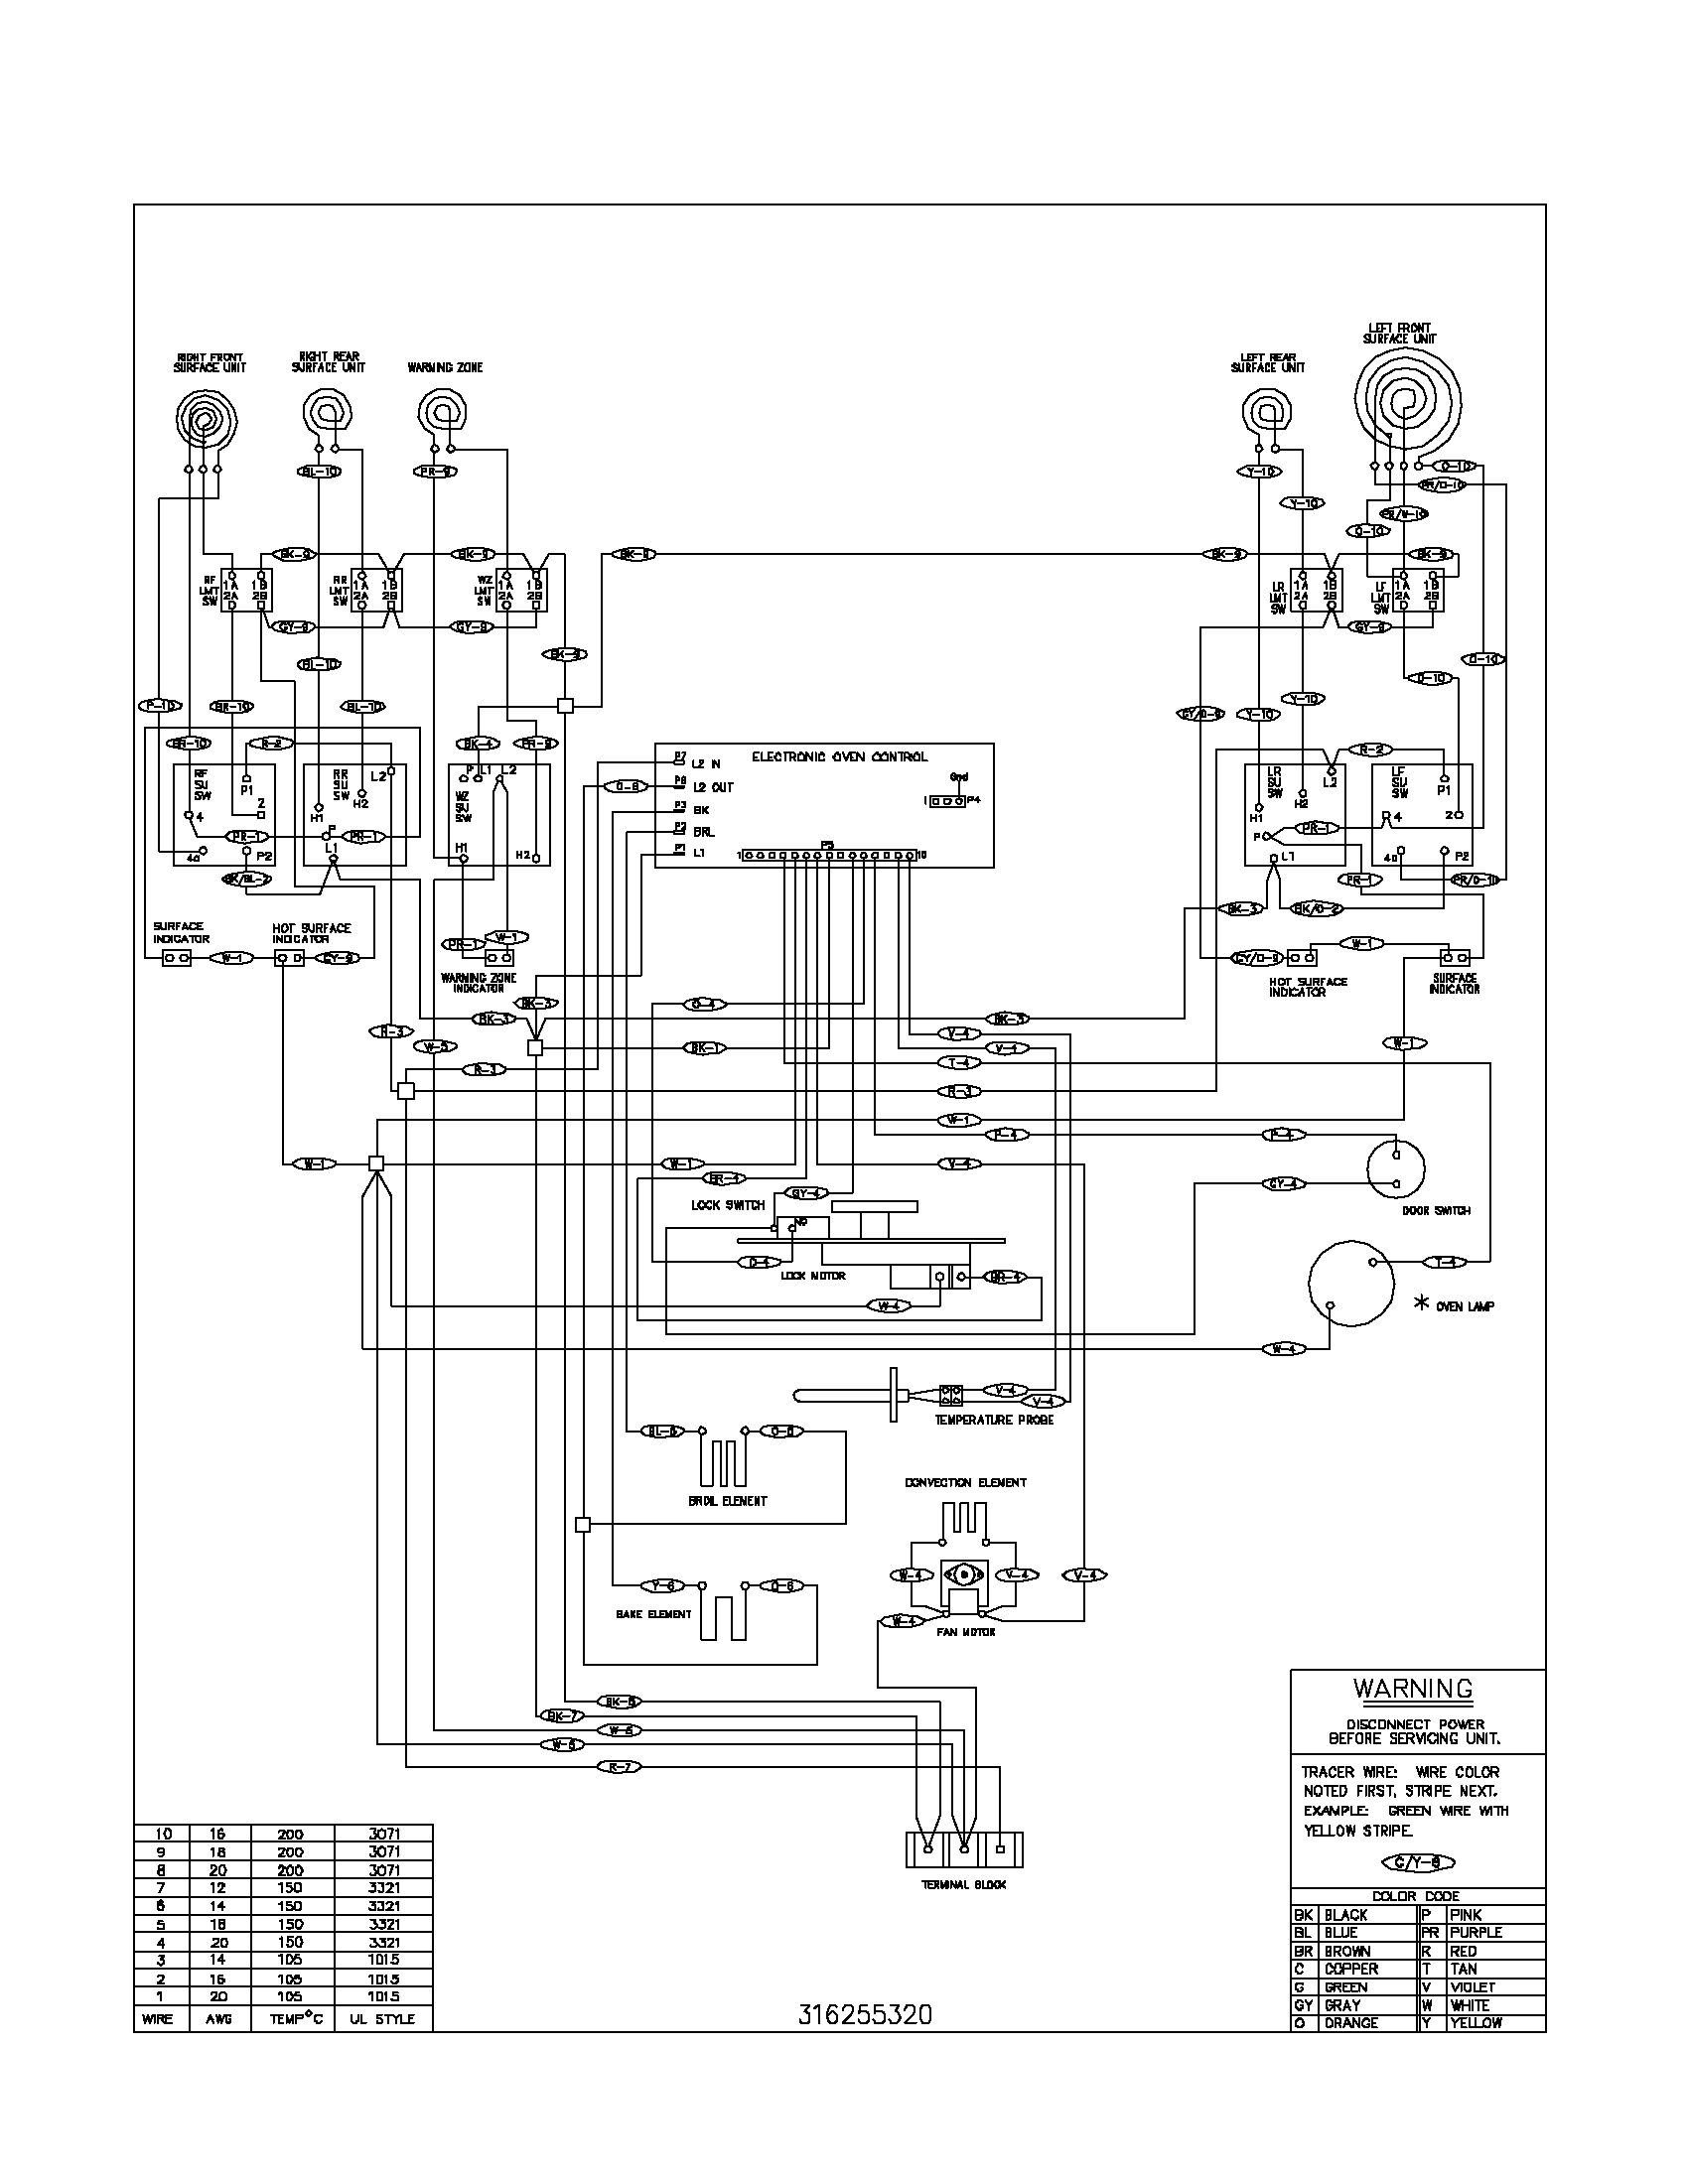 gmos 06 wiring harness   22 wiring diagram images